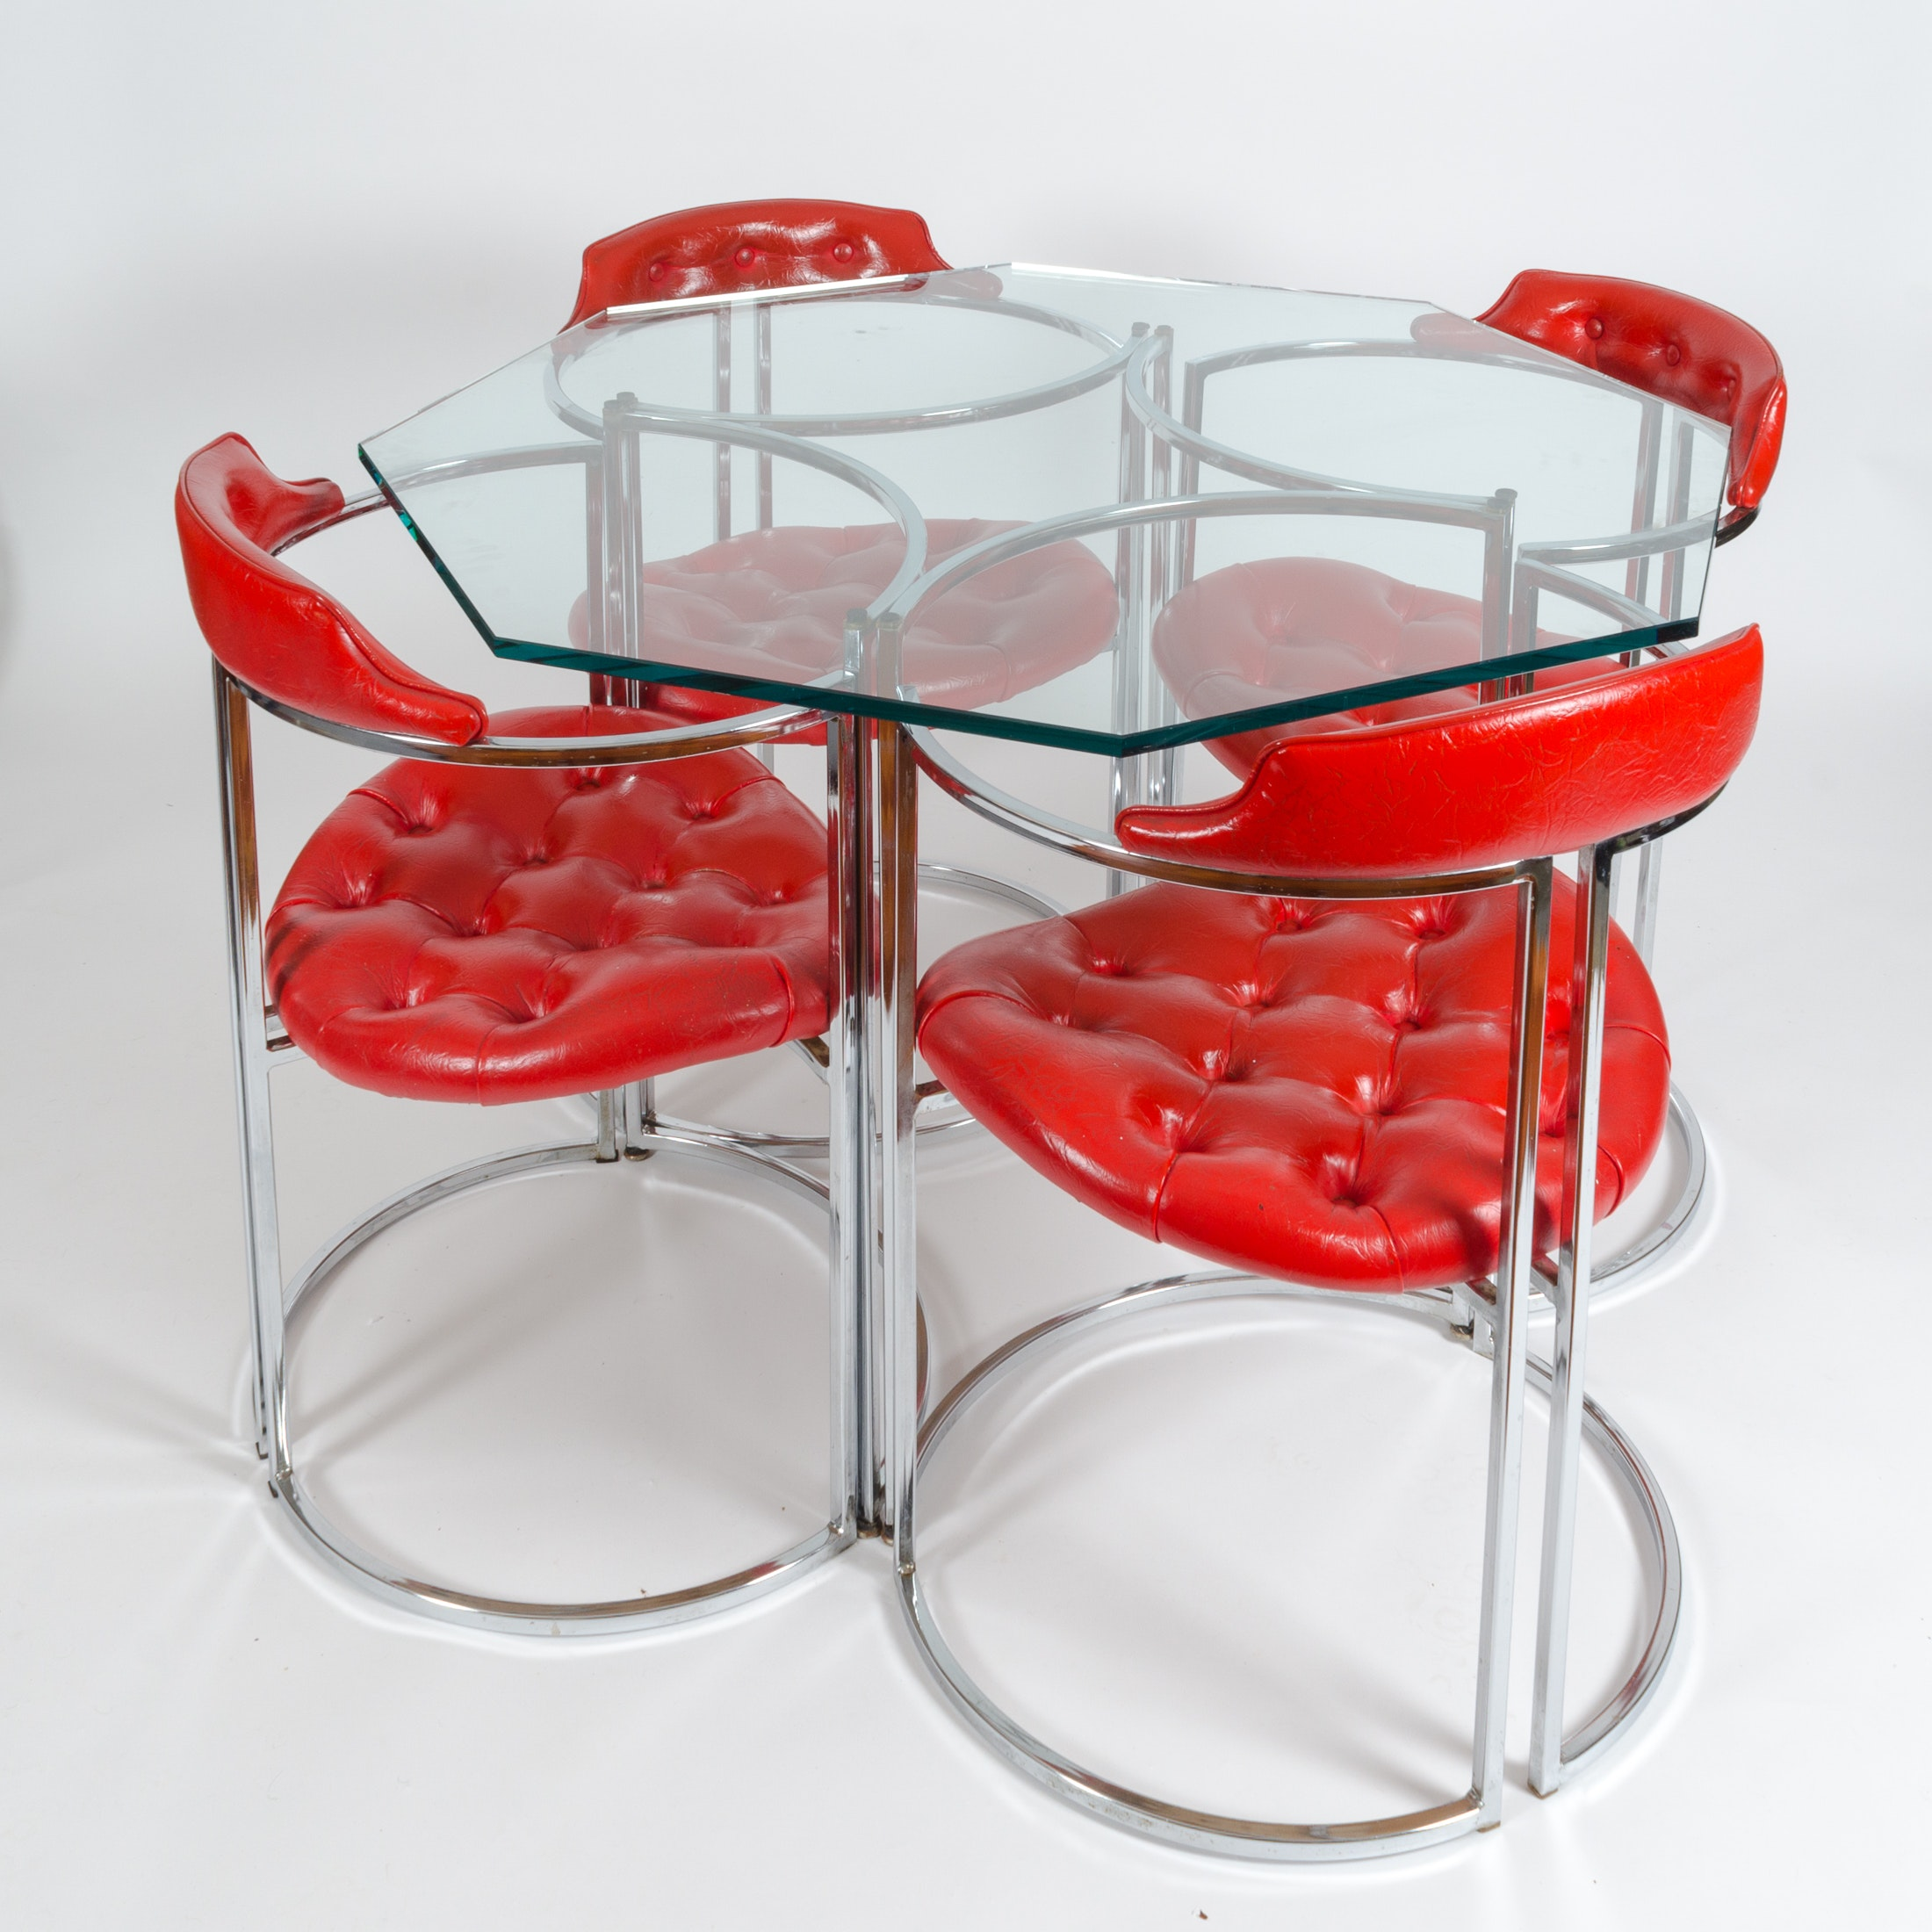 Vintage Mid Century Modern Occasional Table with Chairs